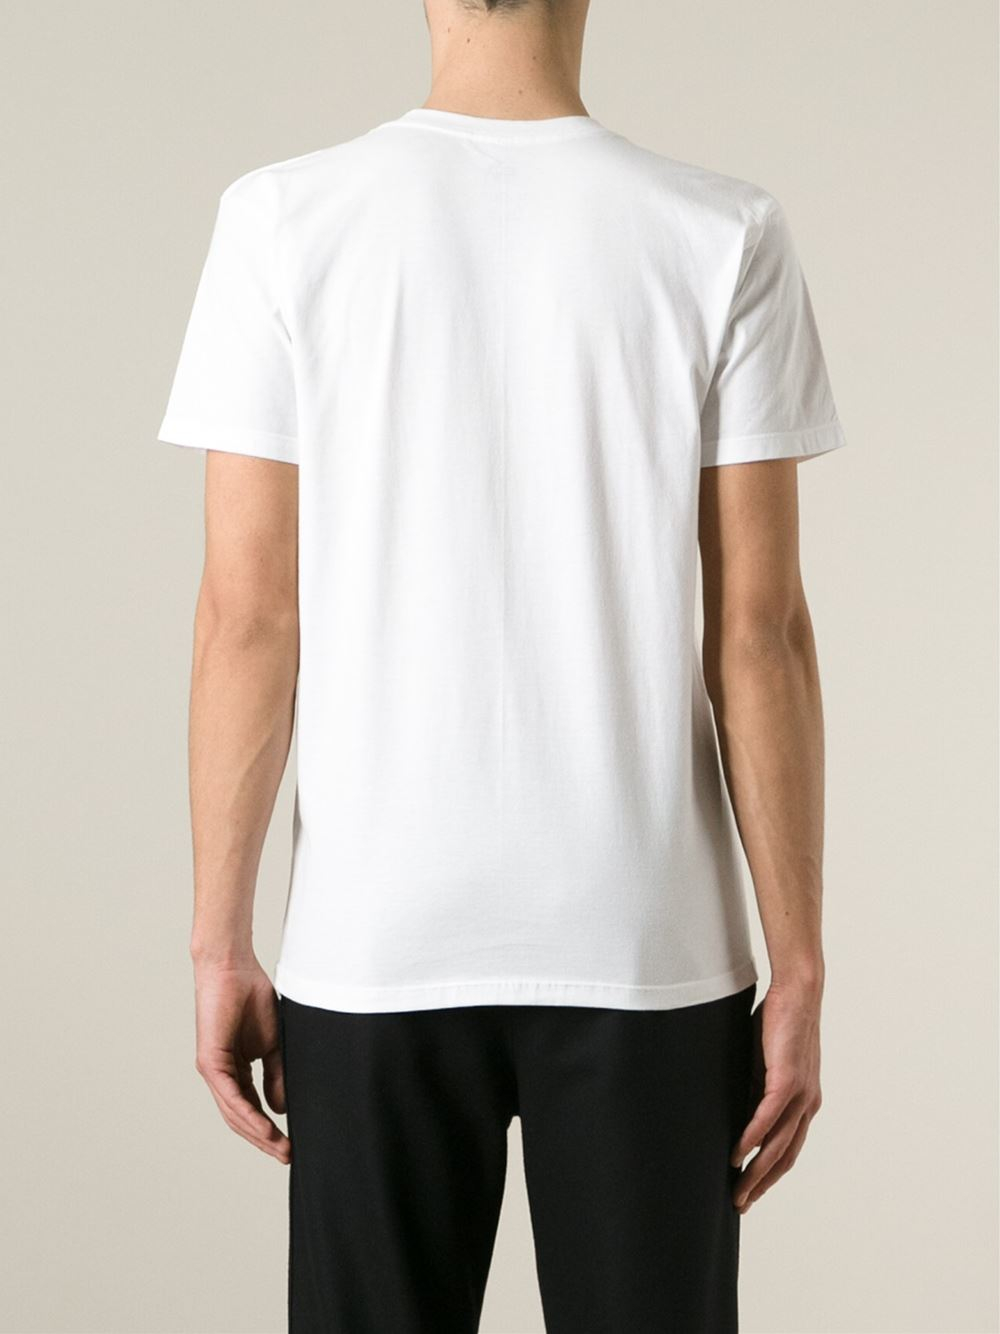 lyst obey handcuffs t shirt in white for men. Black Bedroom Furniture Sets. Home Design Ideas